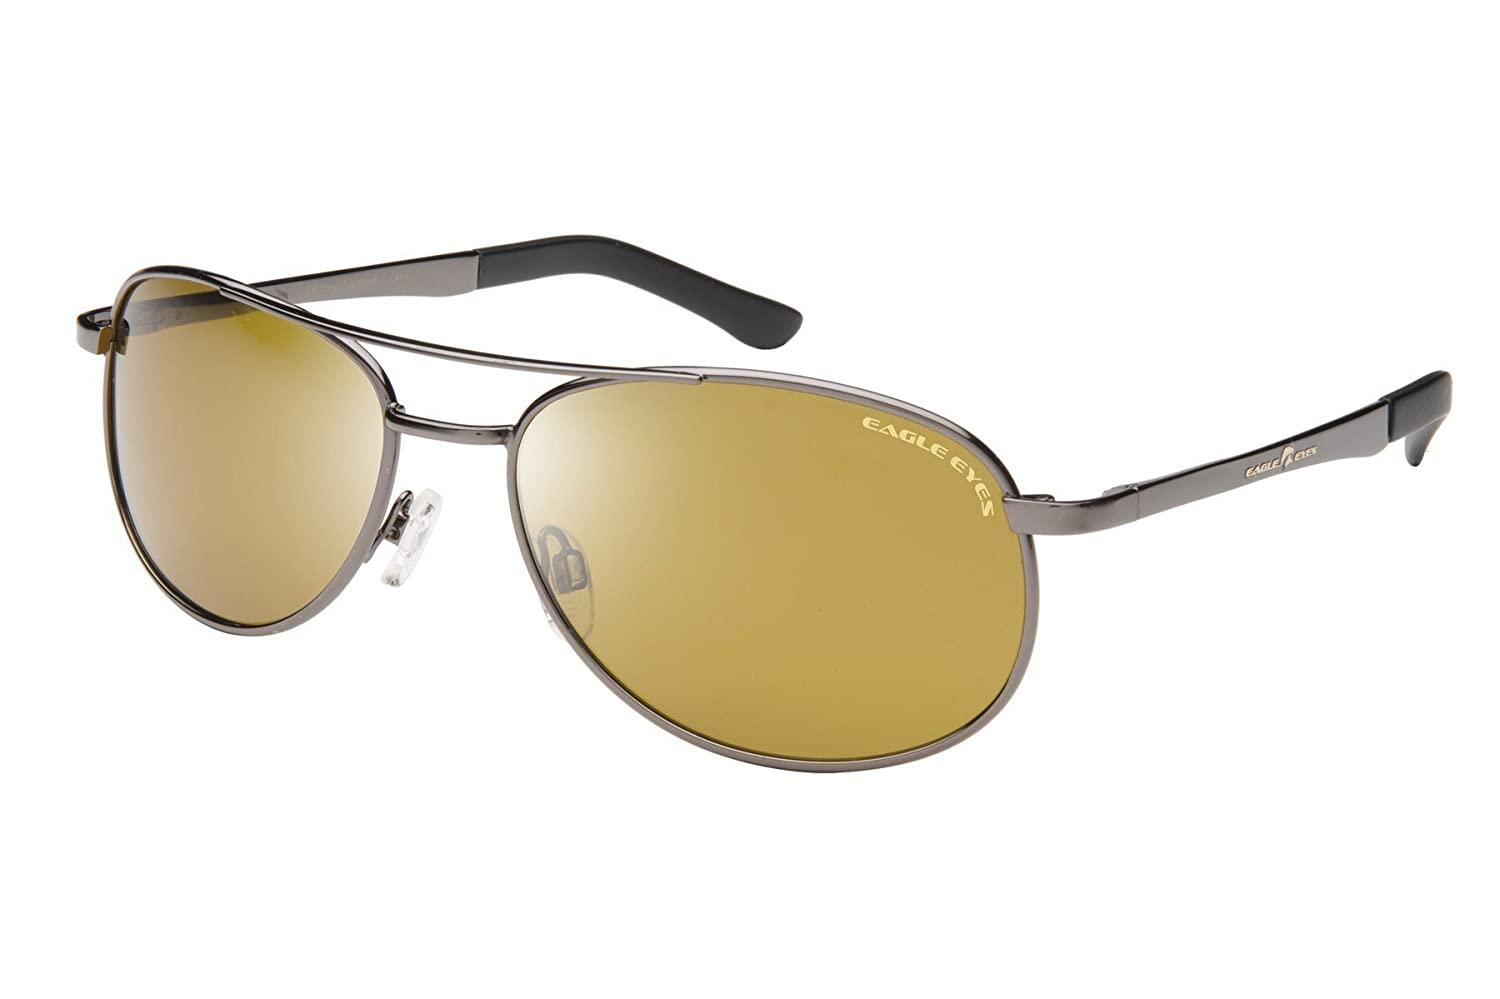 Eagle Eyes Aviator Polarized Sunglasses - Aviator Glasses with Brow Bar